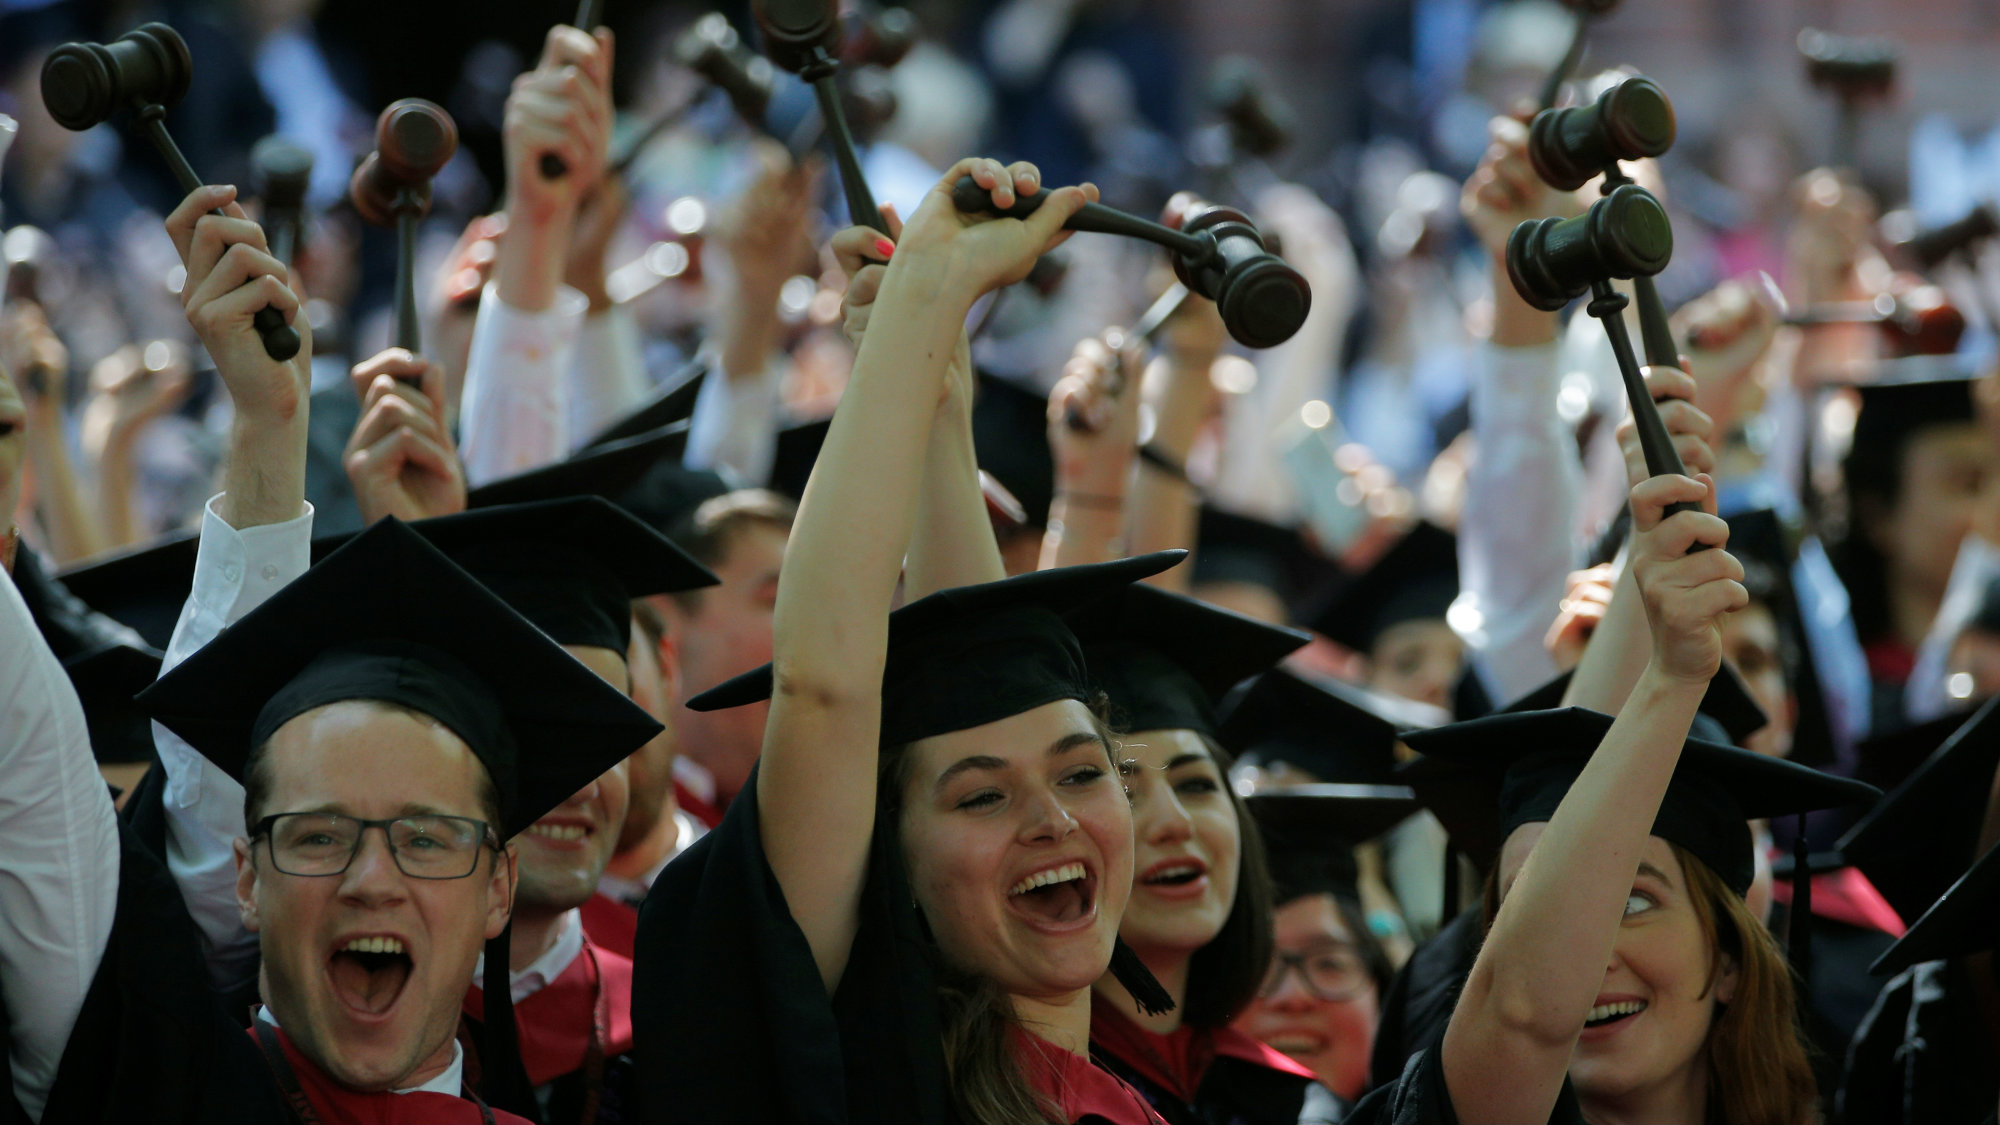 Graduating Law School students cheer as they receive their degrees during the 365th Commencement Exercises at Harvard University in Cambridge, Massachusetts, U.S. May 26, 2016.